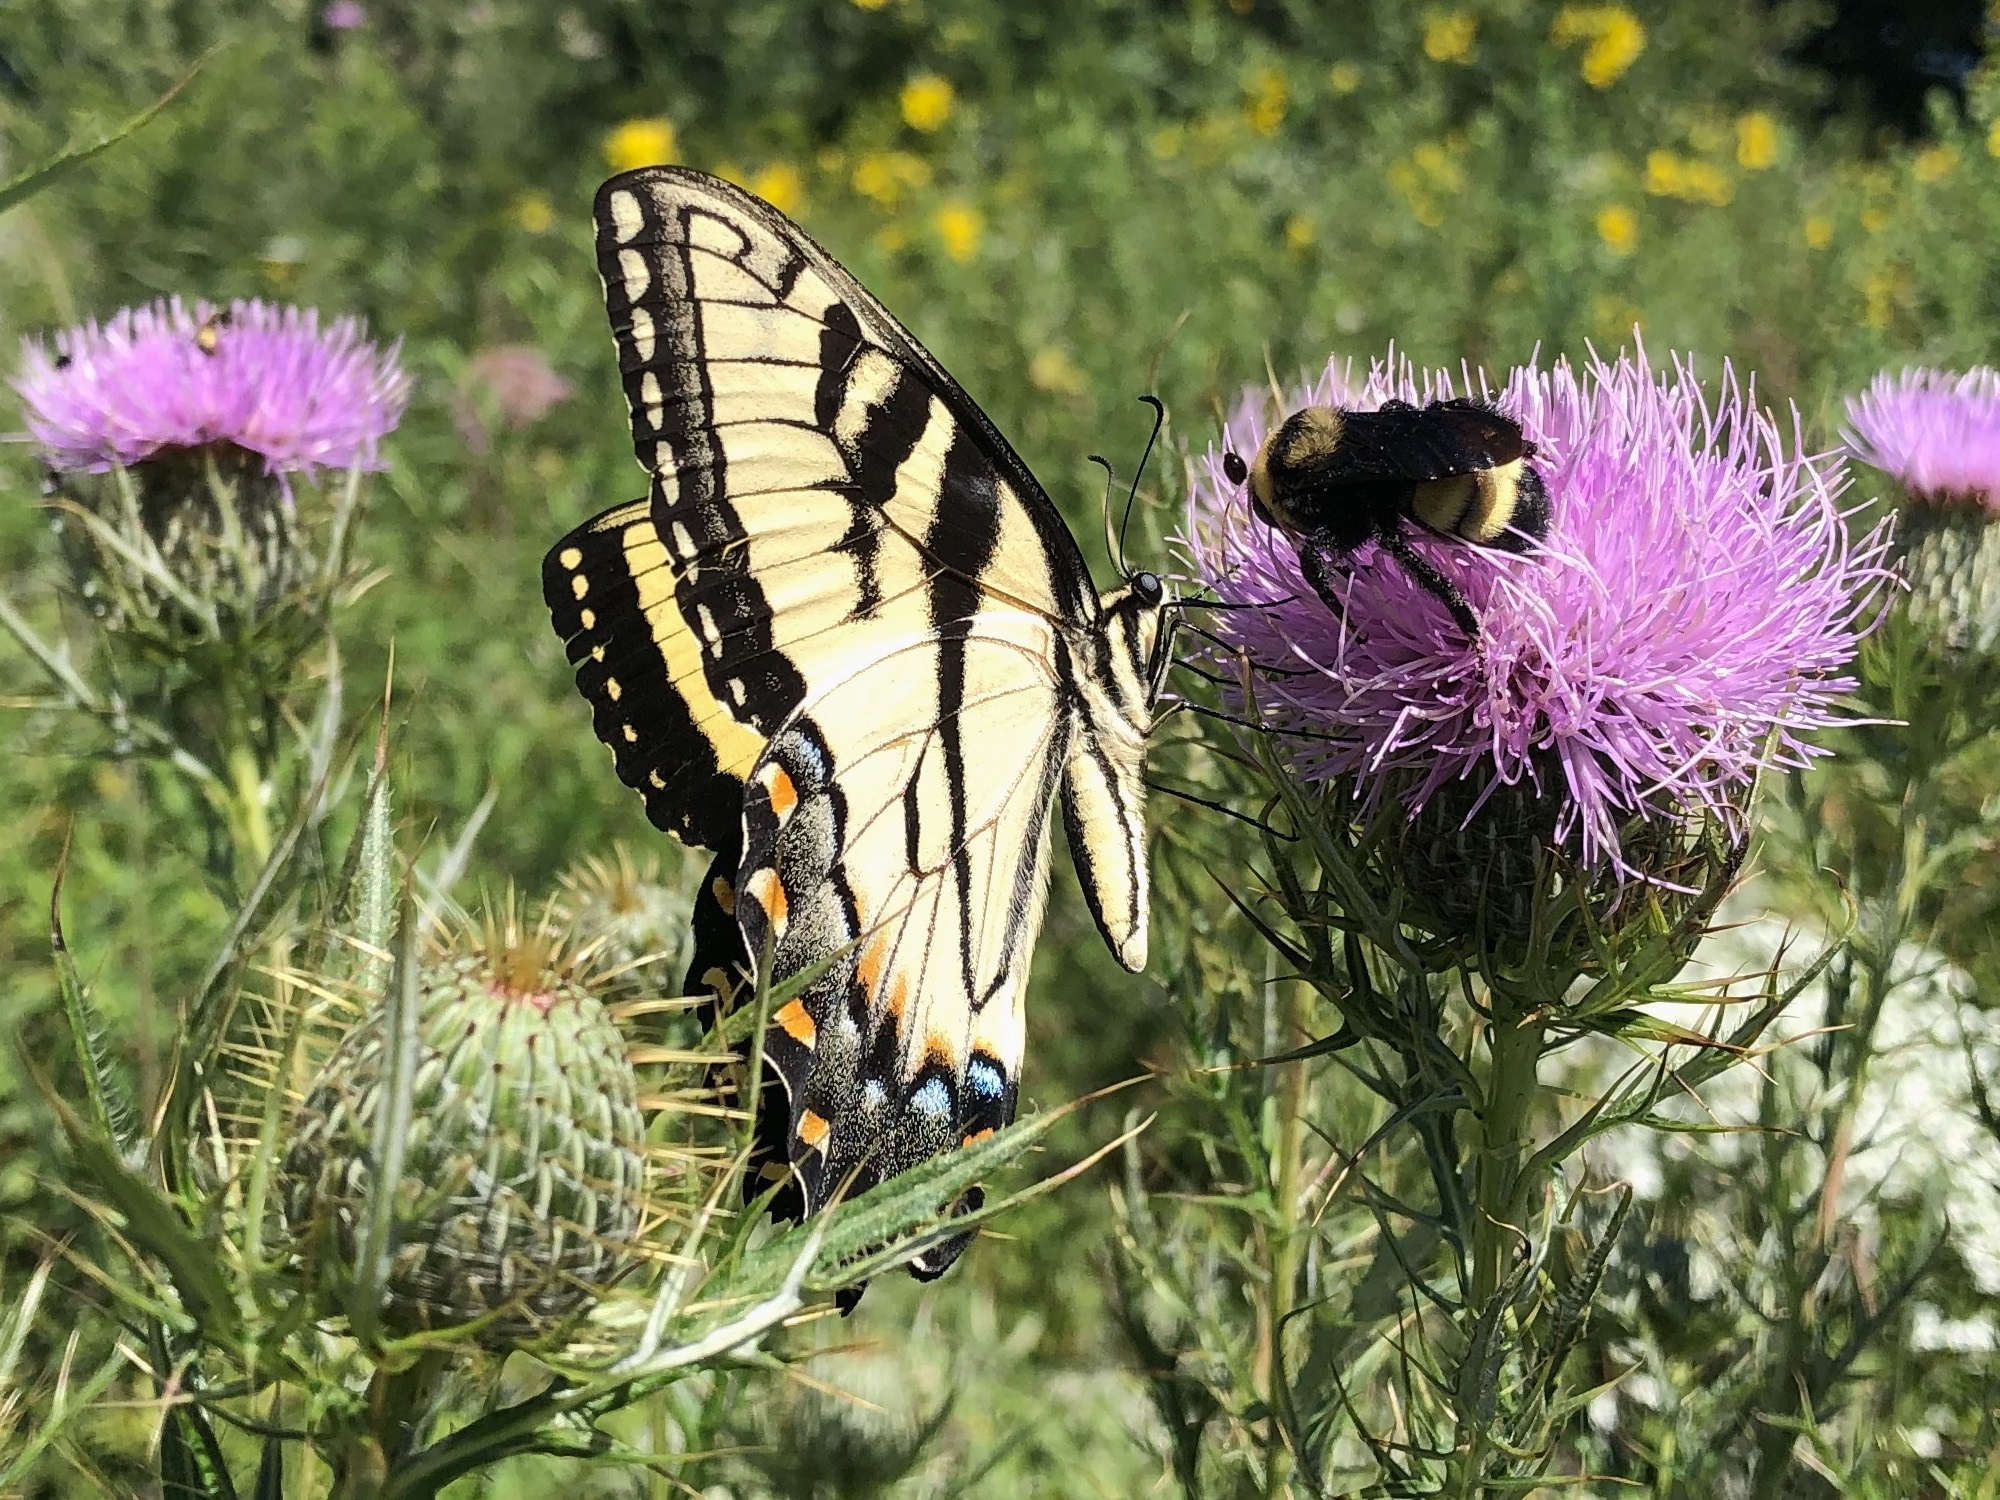 Bumblebee and Tiger Swallowtail Butterfly on Thistle on August 16, 2020.